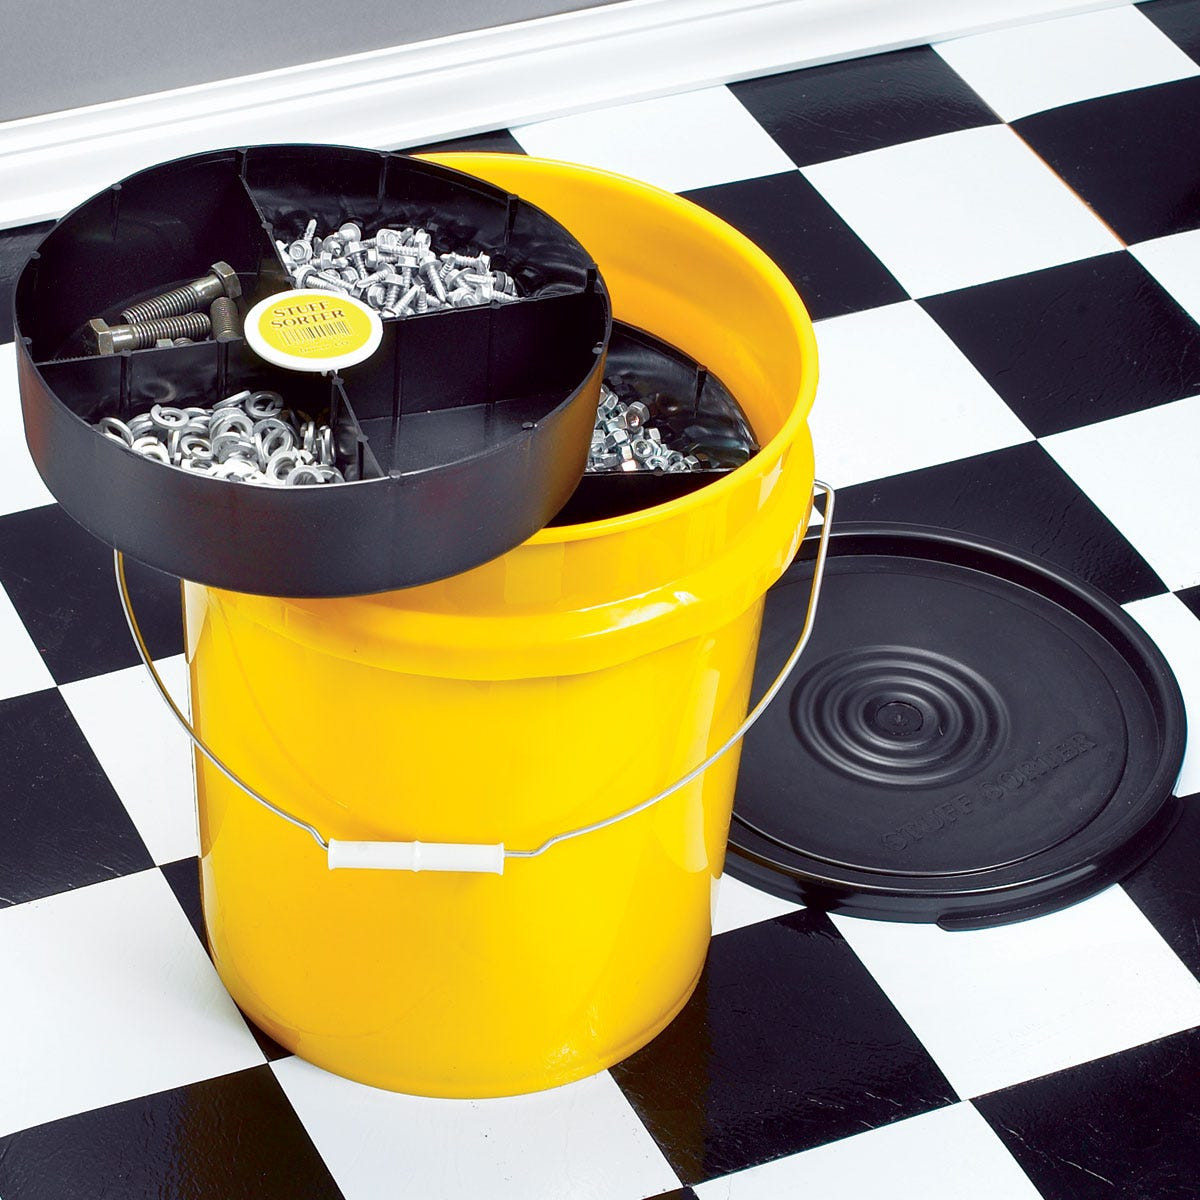 Drop In The Bucket Storage System From Sporty S Tool Shop